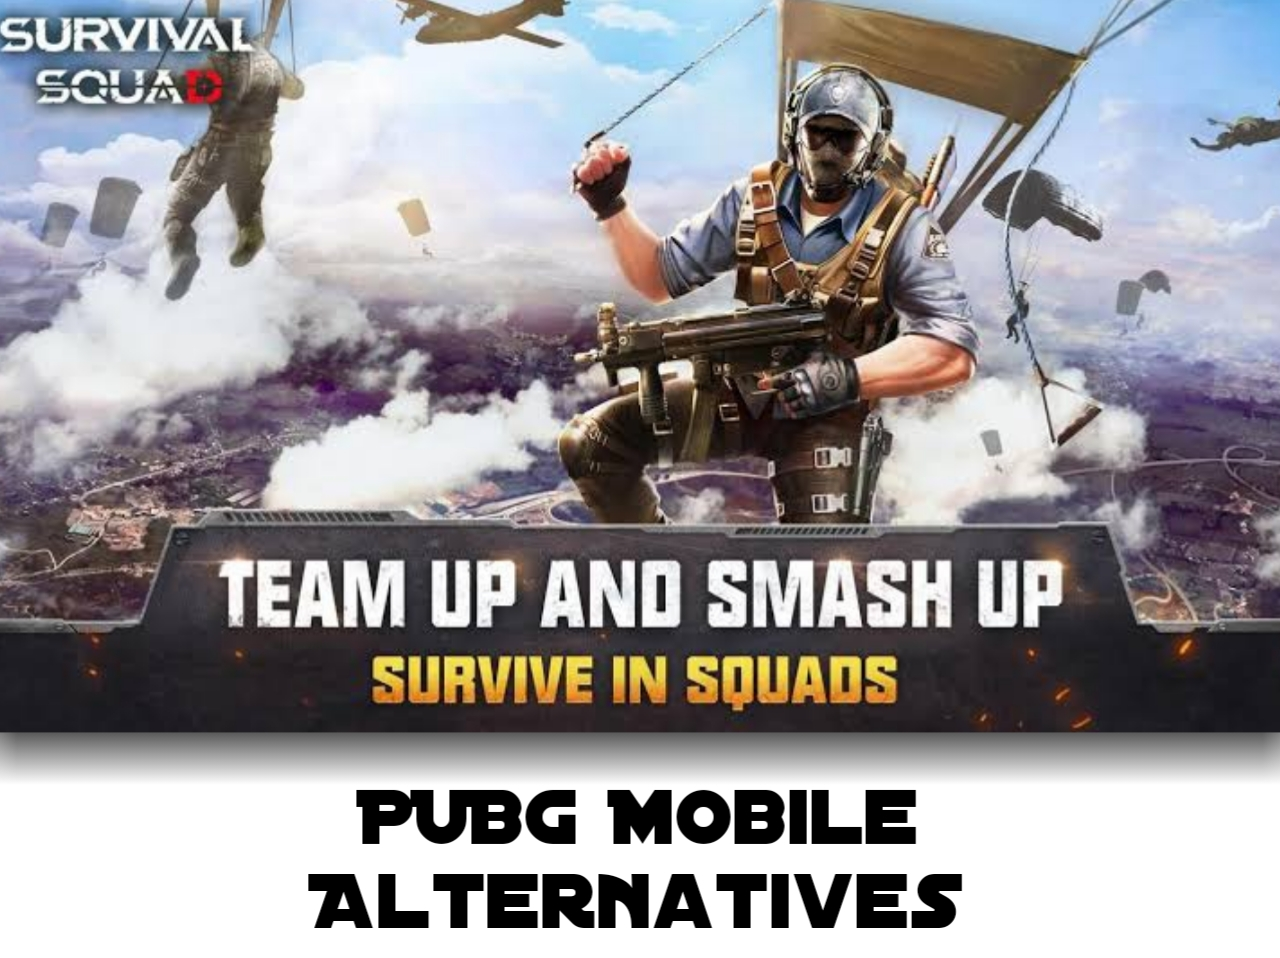 Survival Squab PUBG Like Games